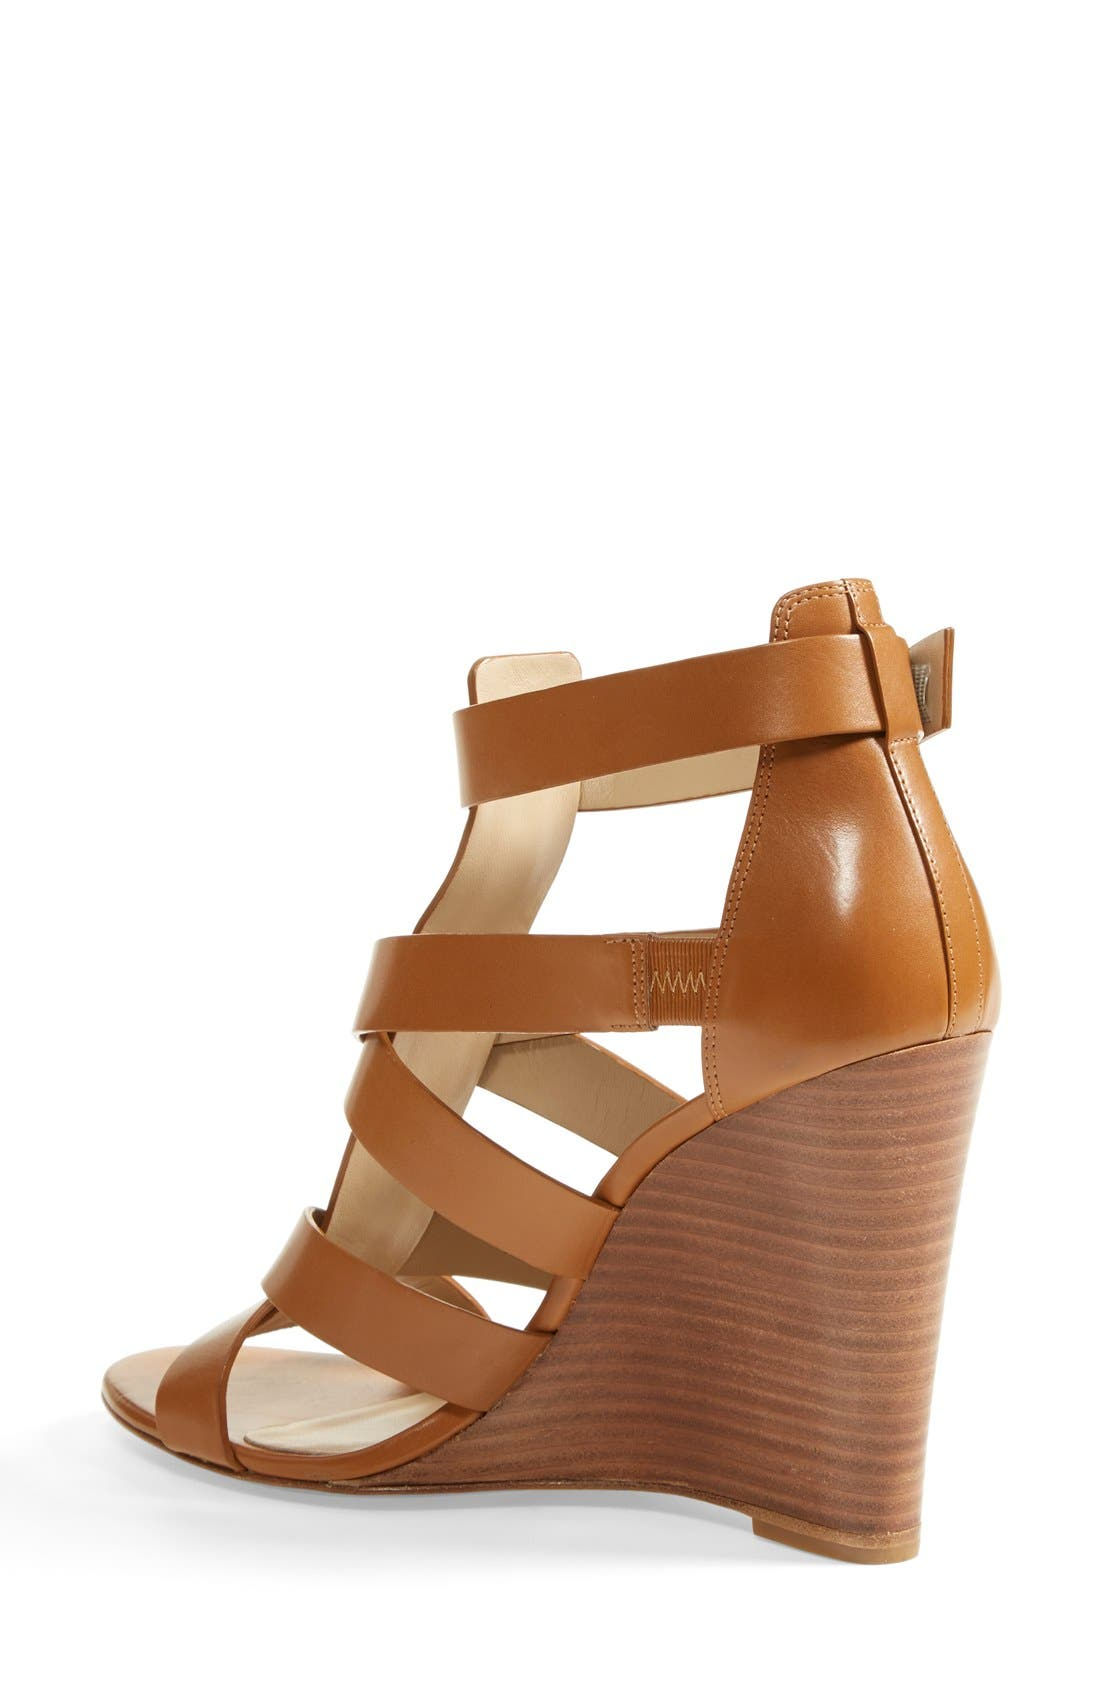 Alternate Image 2  - Michael Kors 'Reagan' Wedge Sandal (Women)